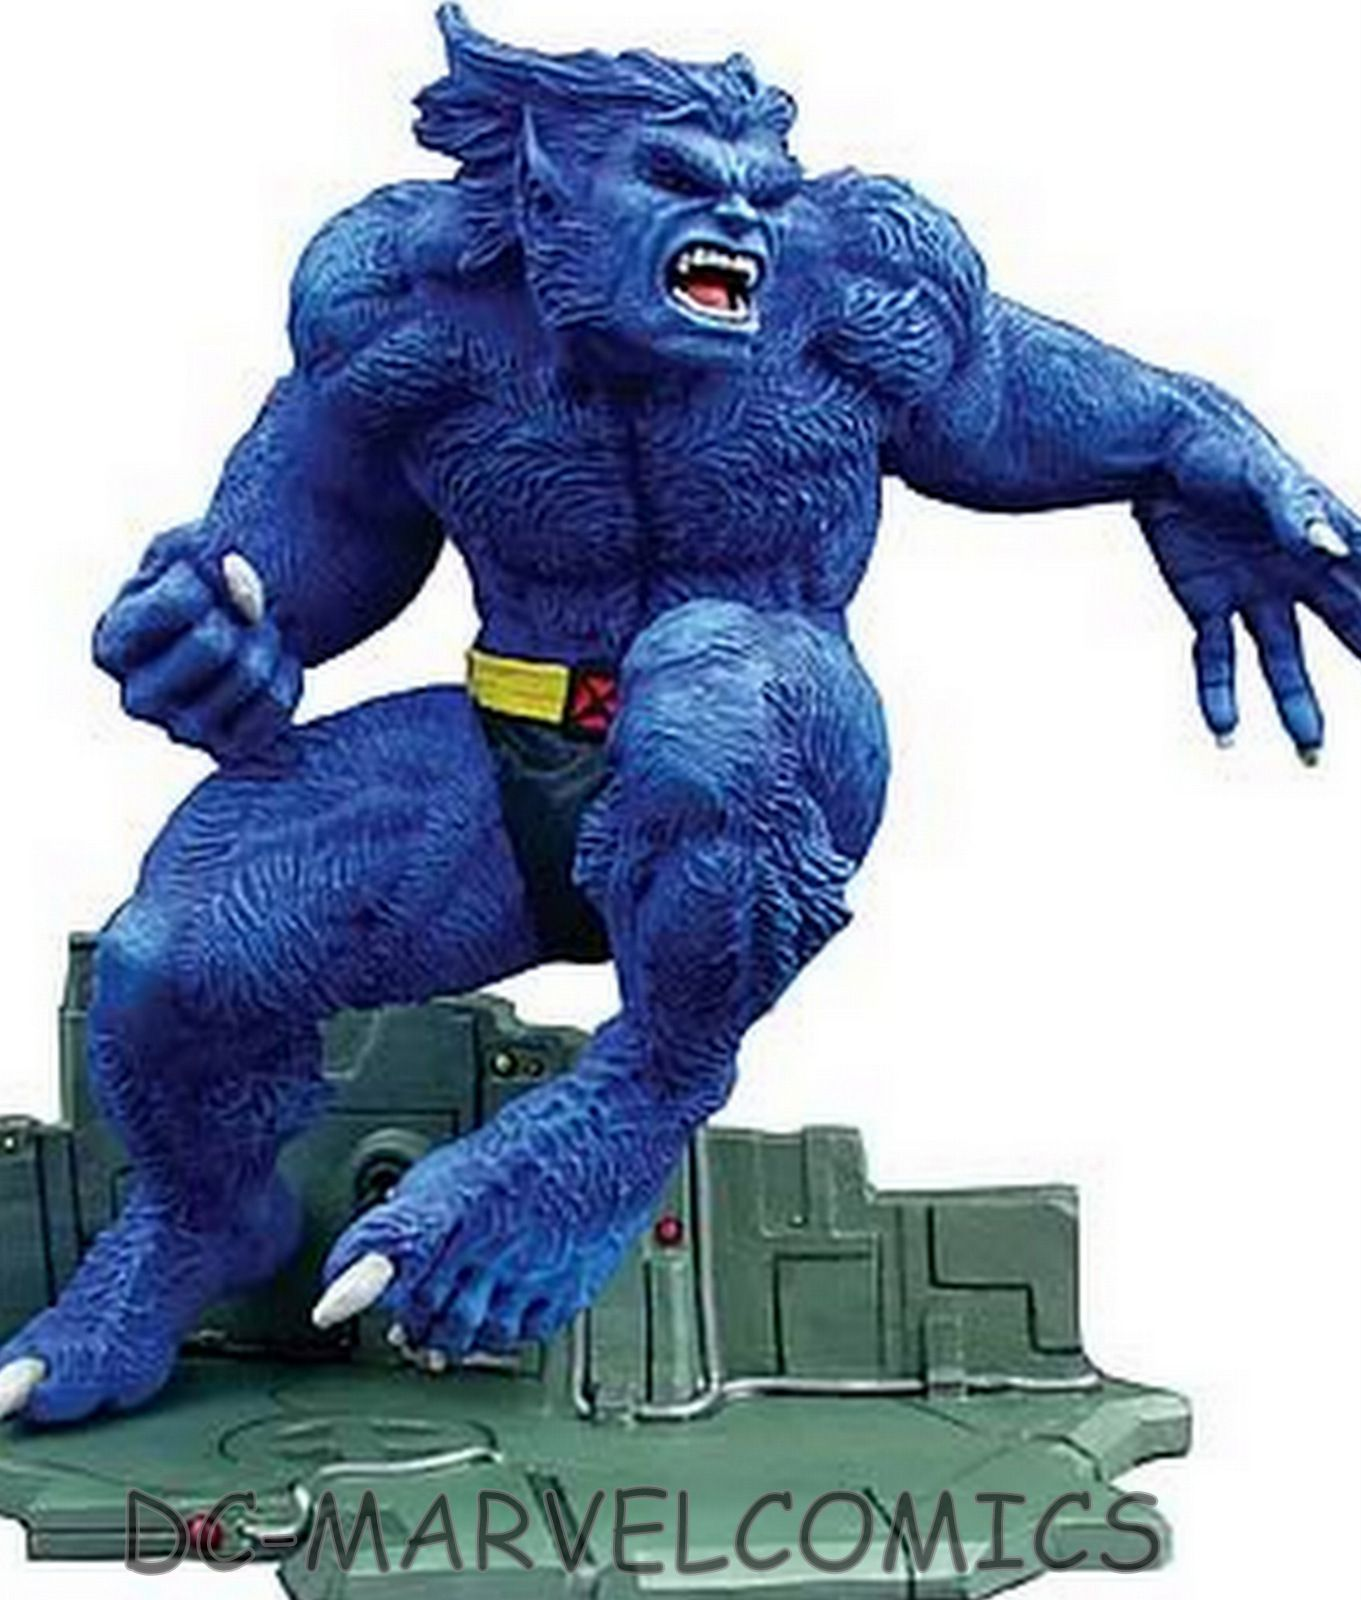 MARVEL★BEAST MODERN ERA X-MEN SERIES STATUE JIM LEE MIB★MAQUETTE nt Bowen Gambit | eBay